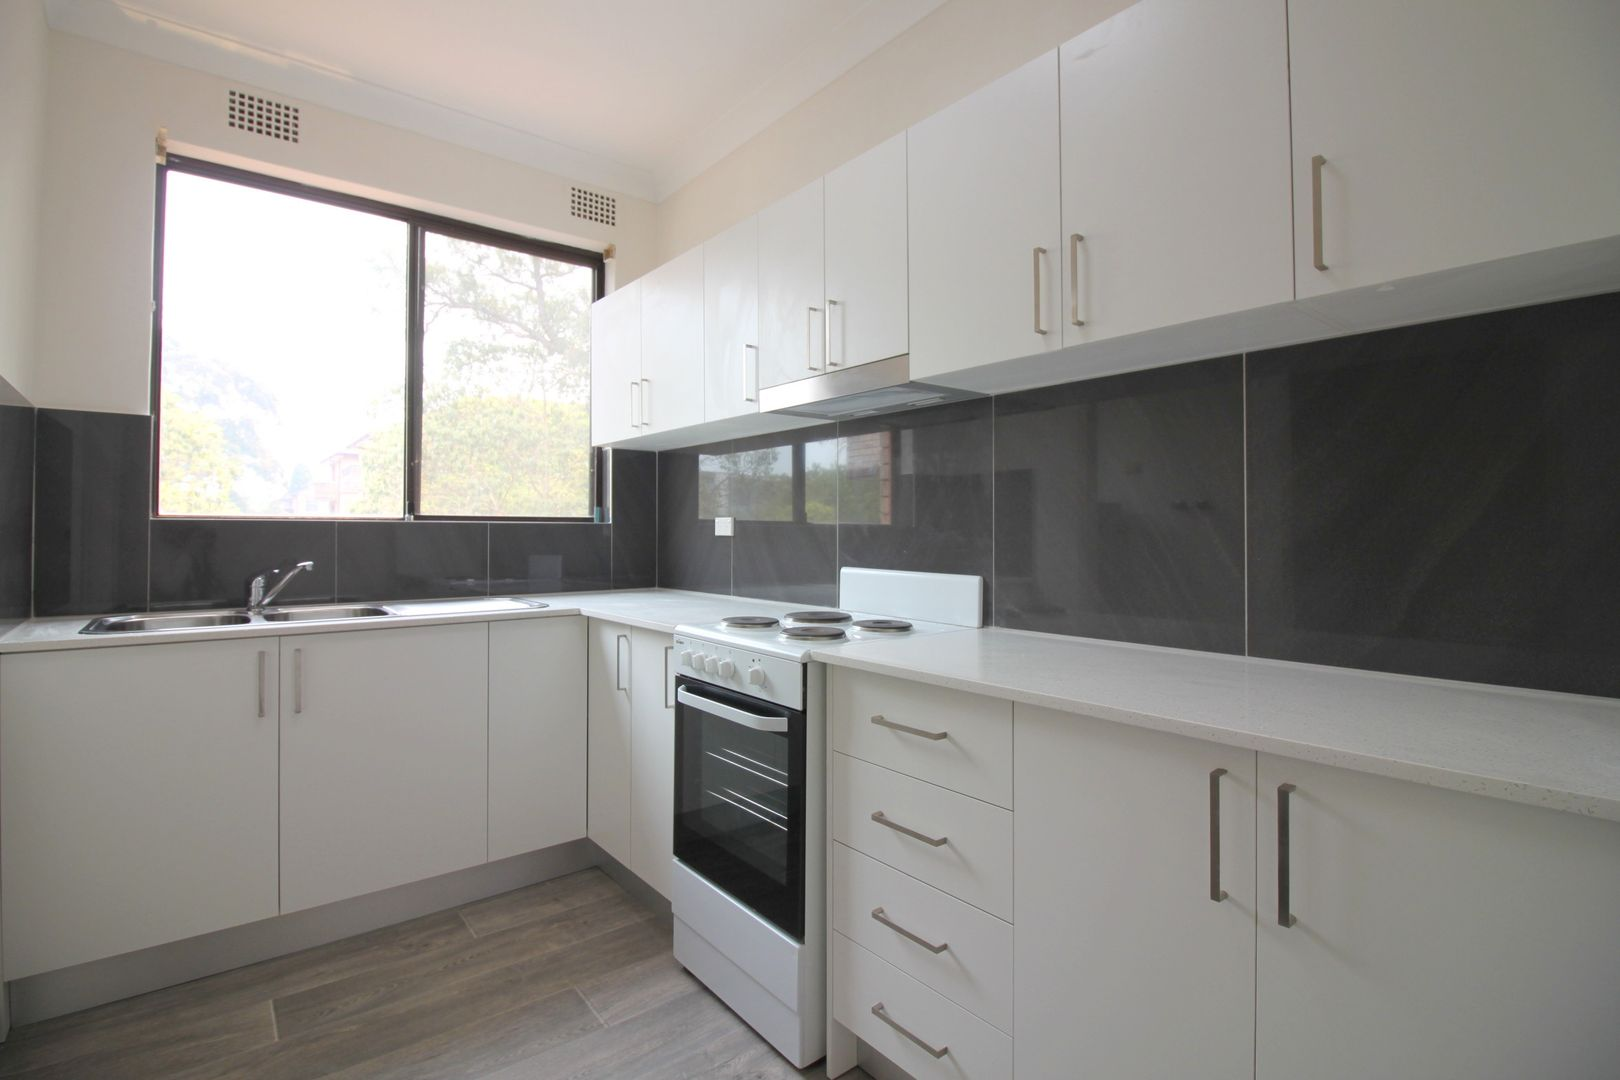 4/41-45 Martin Place, Mortdale NSW 2223, Image 0